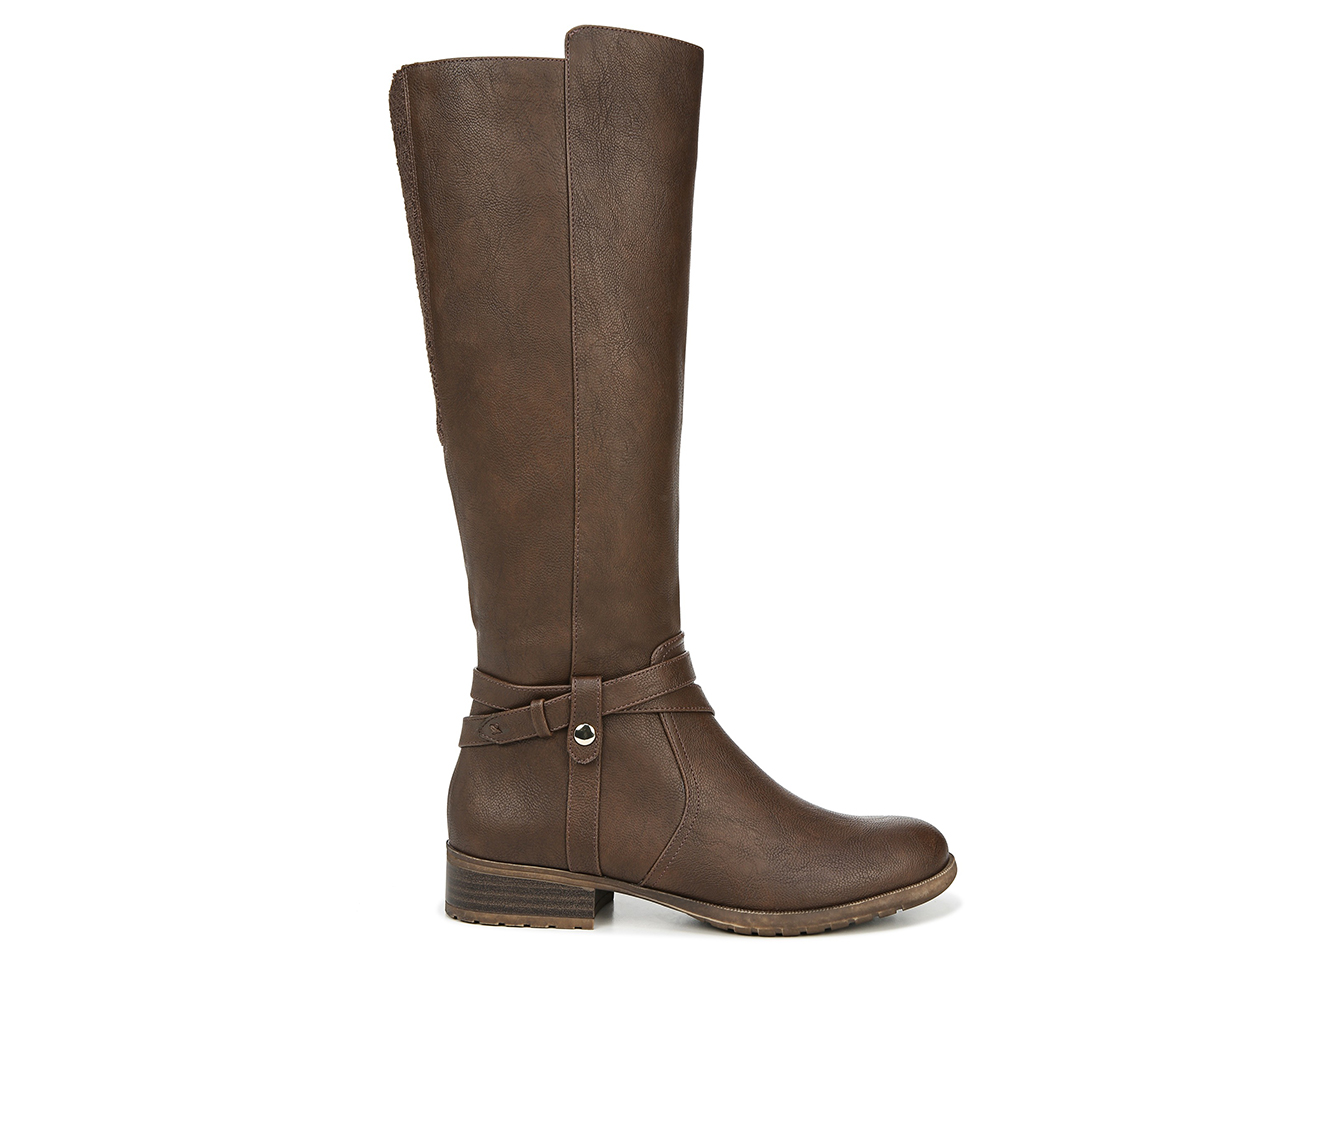 LifeStride Xtrovert Wide Calf Women's Boots (Brown - Faux Leather)